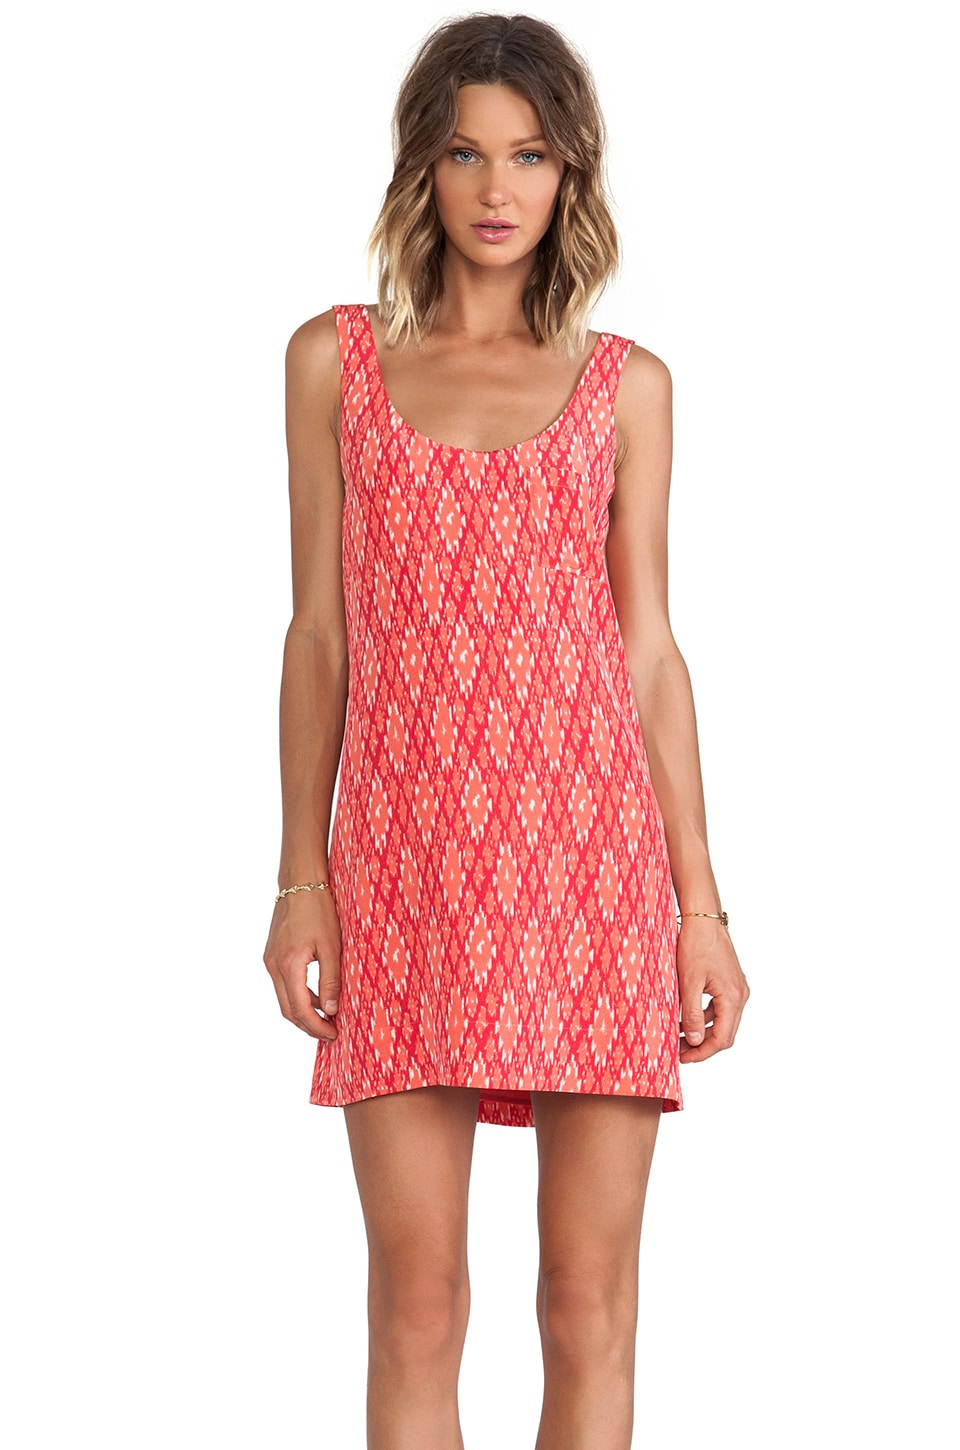 Joie Dawna Ikat Tank Dress in Spiced Coral